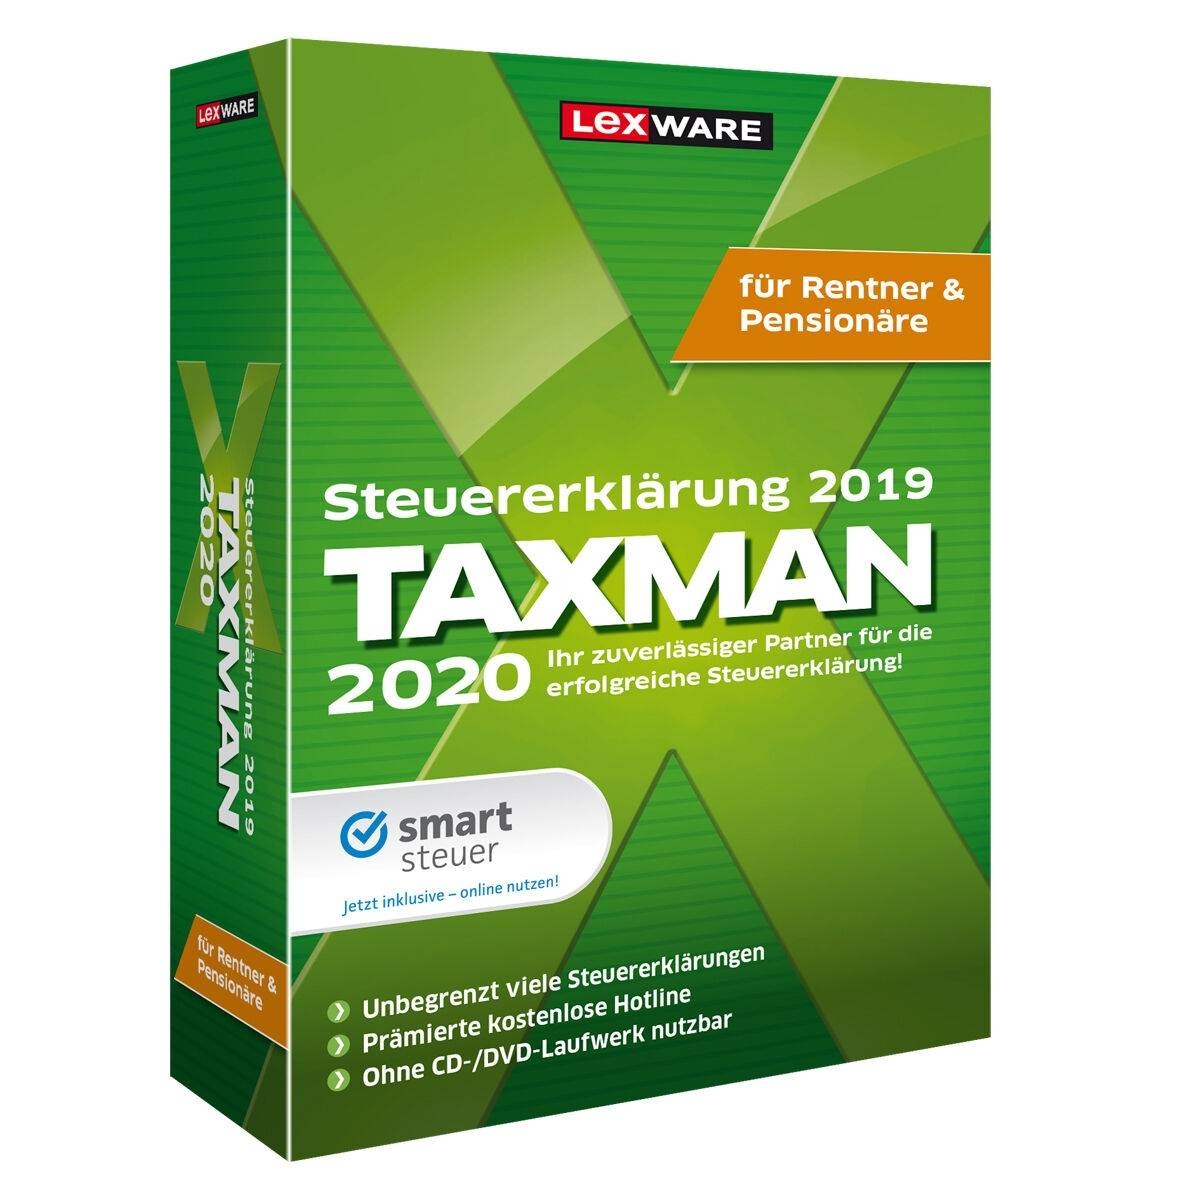 Lexware Taxman 2020 for pensioners and retirees download